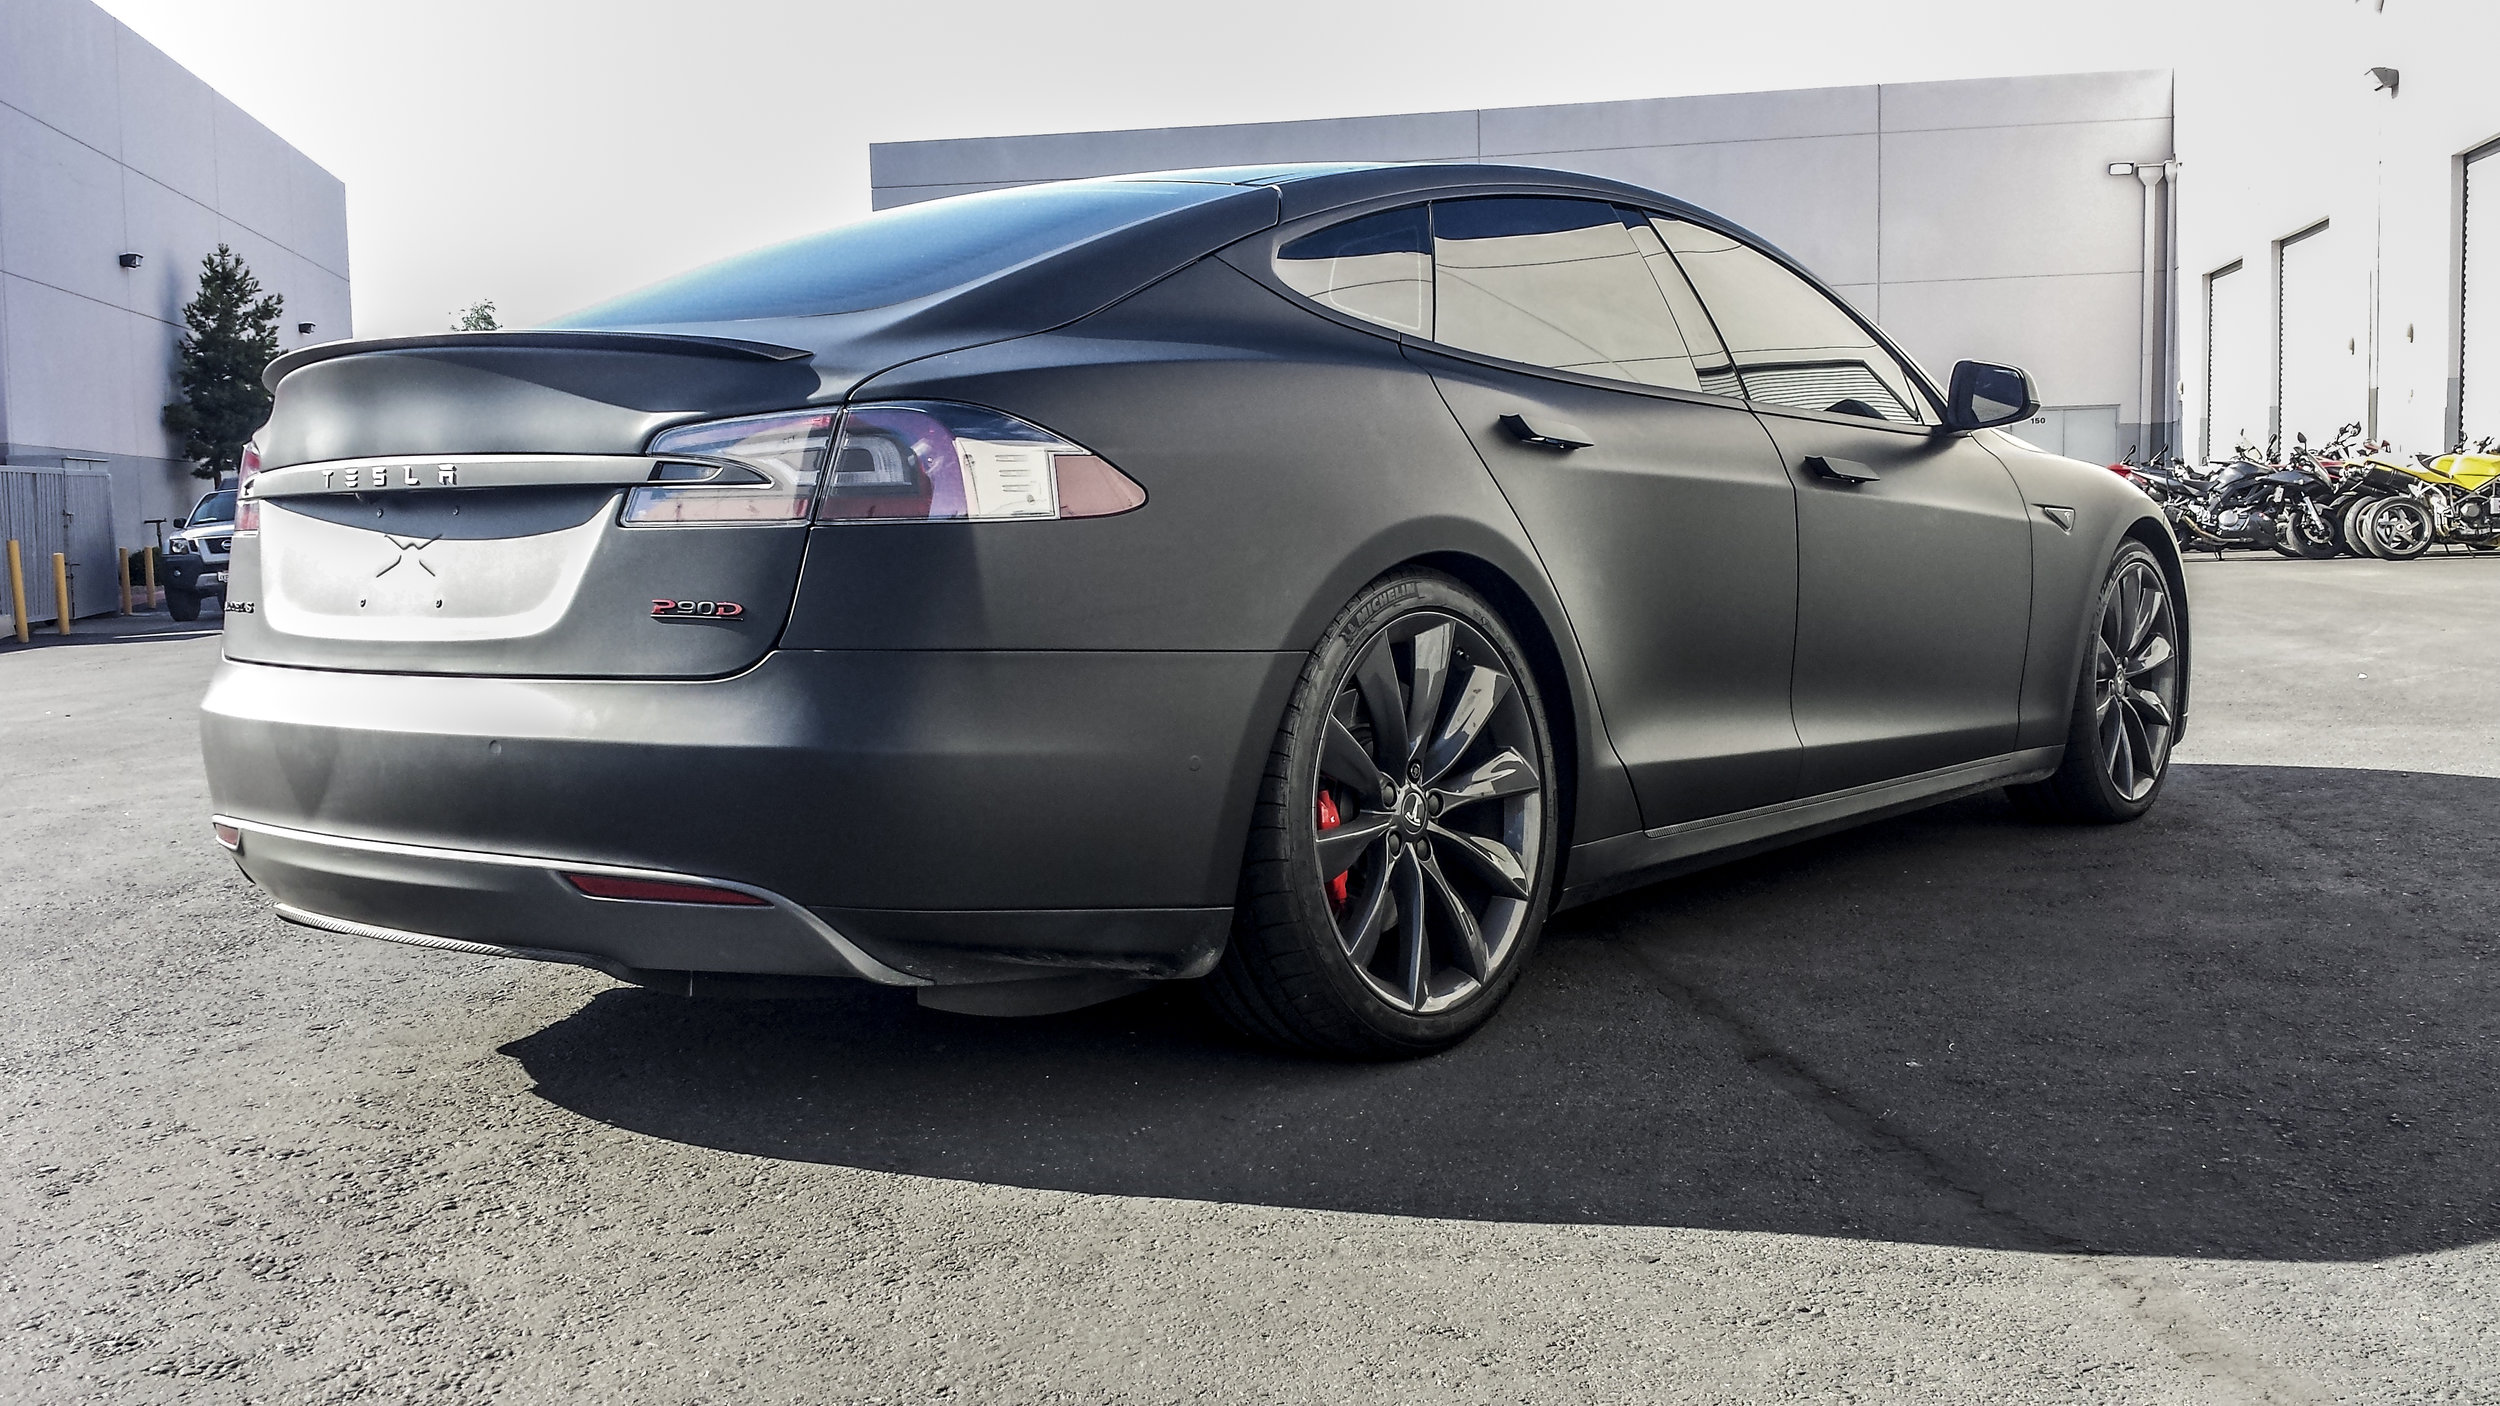 Tesla Model S - All Matte Black, including Chrome Delete and Limo Window Tint